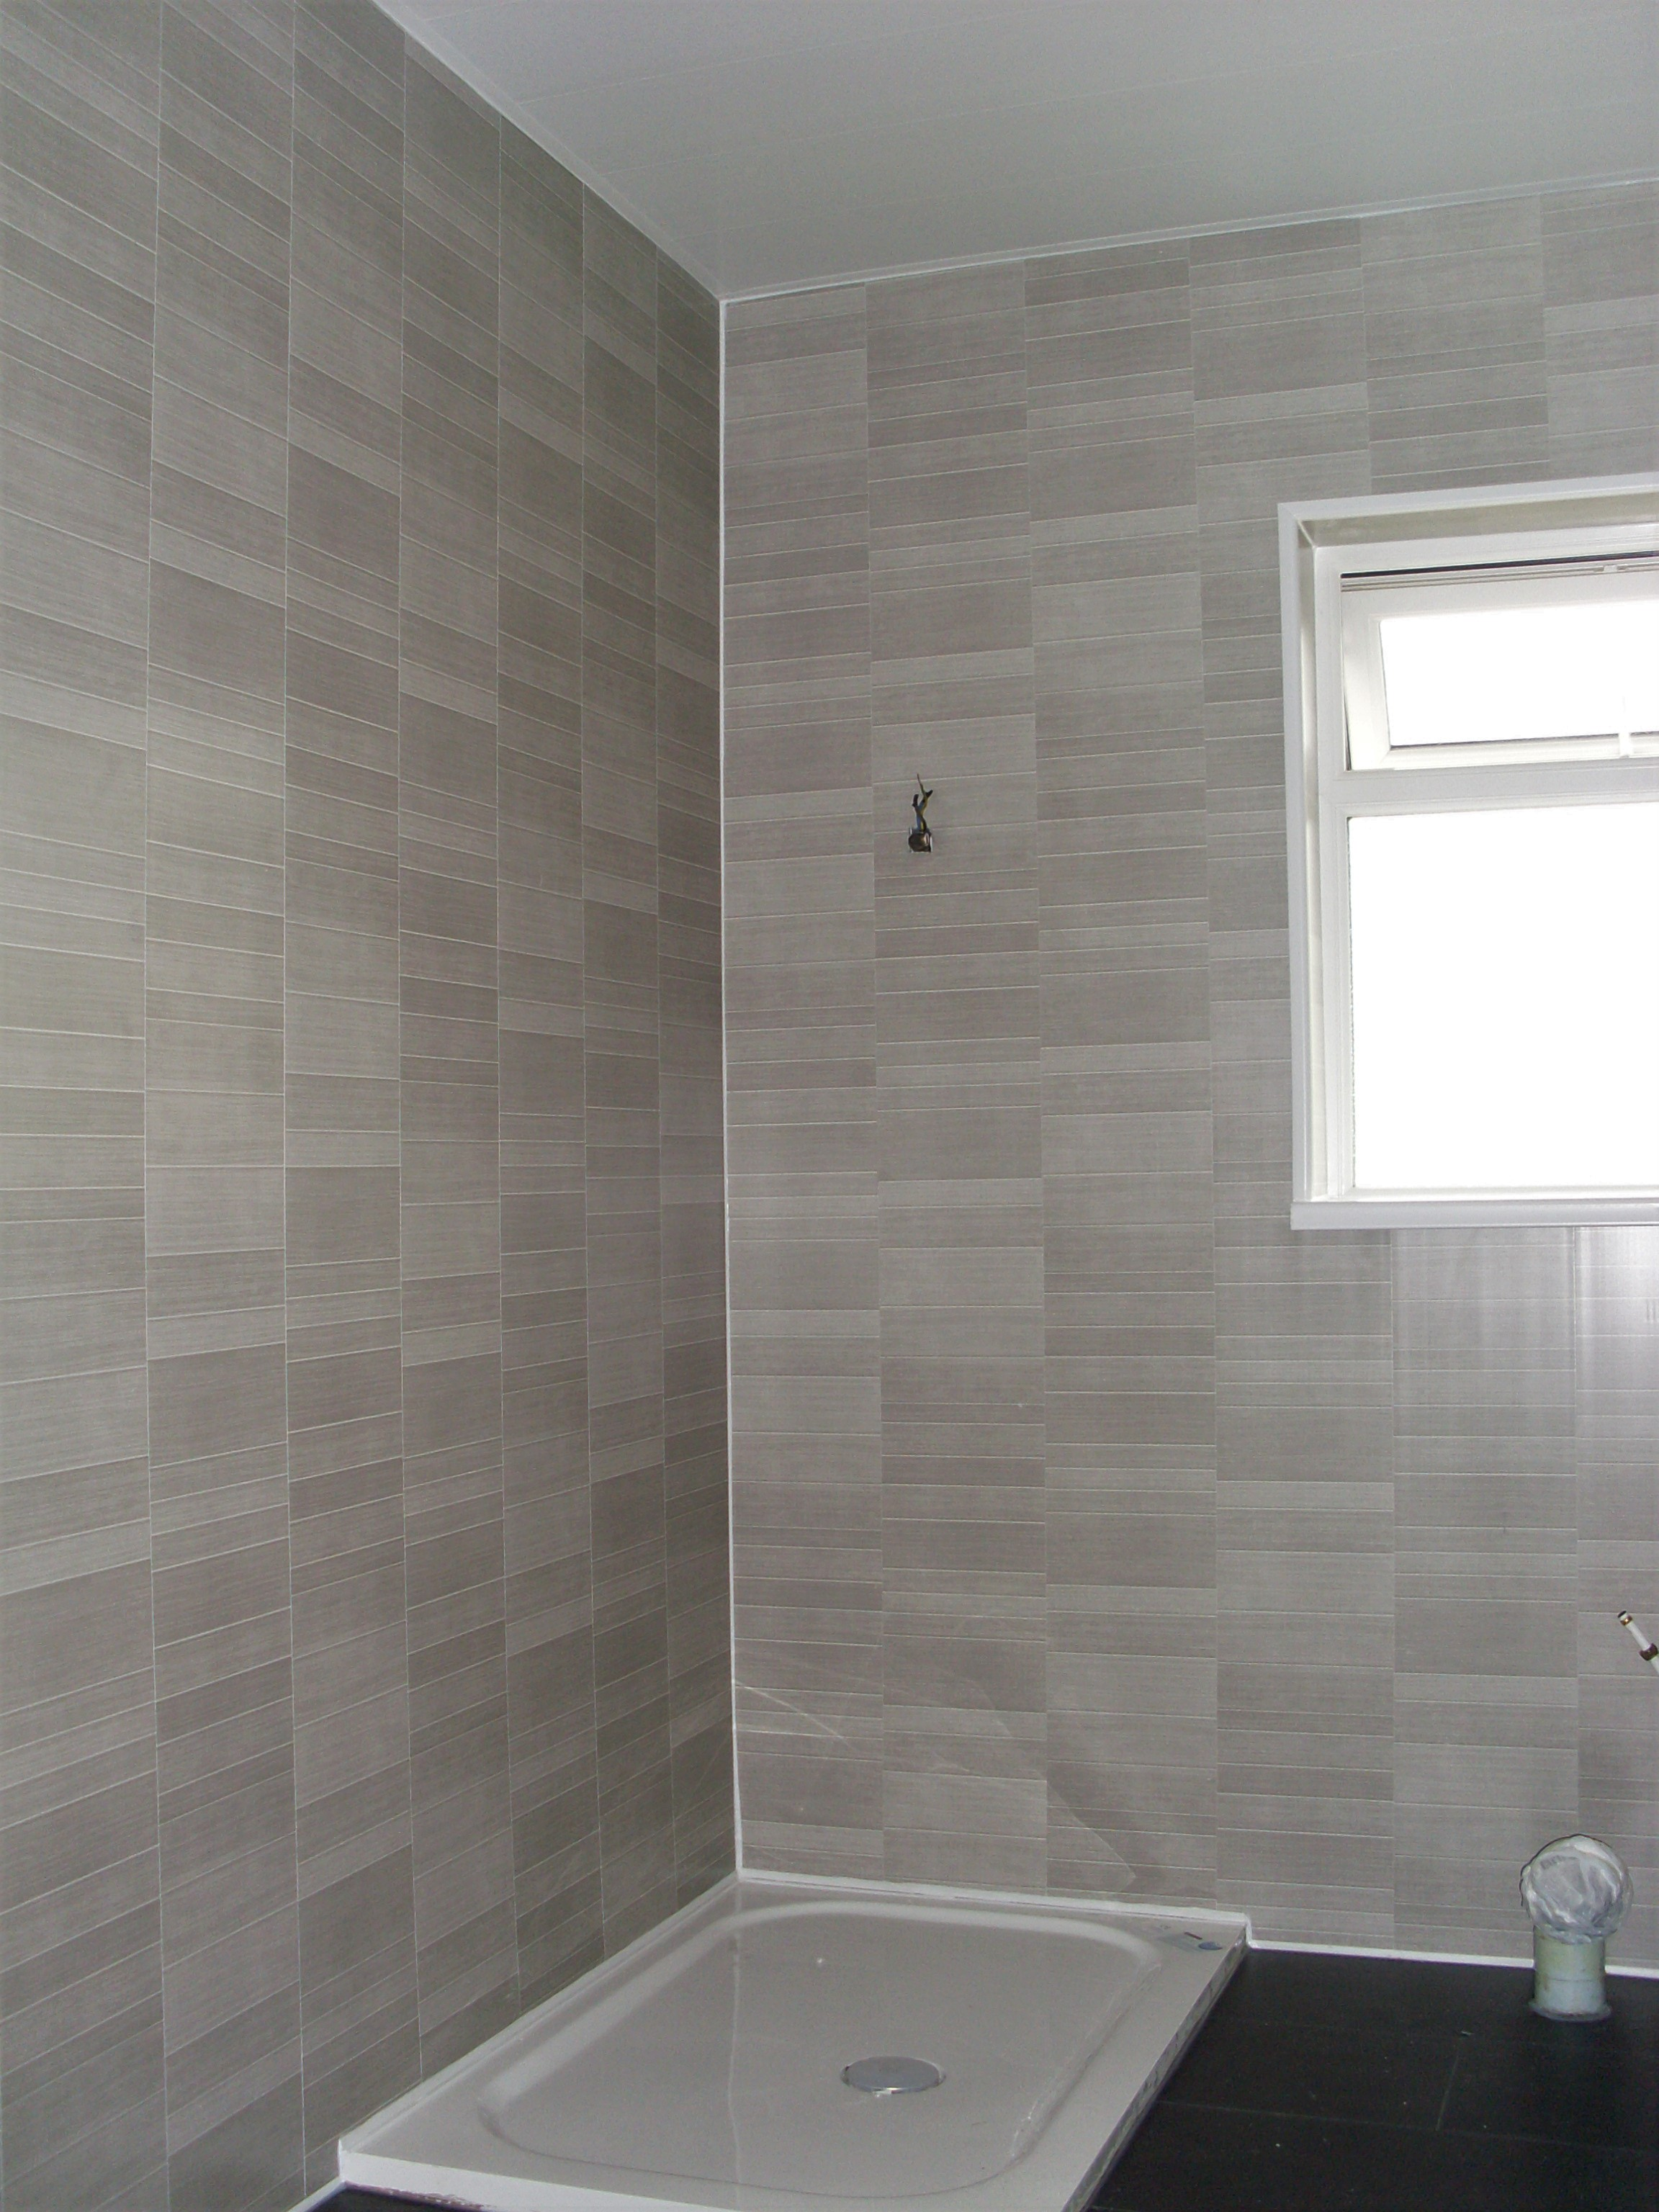 PVC Wall Panels bathroom (1)